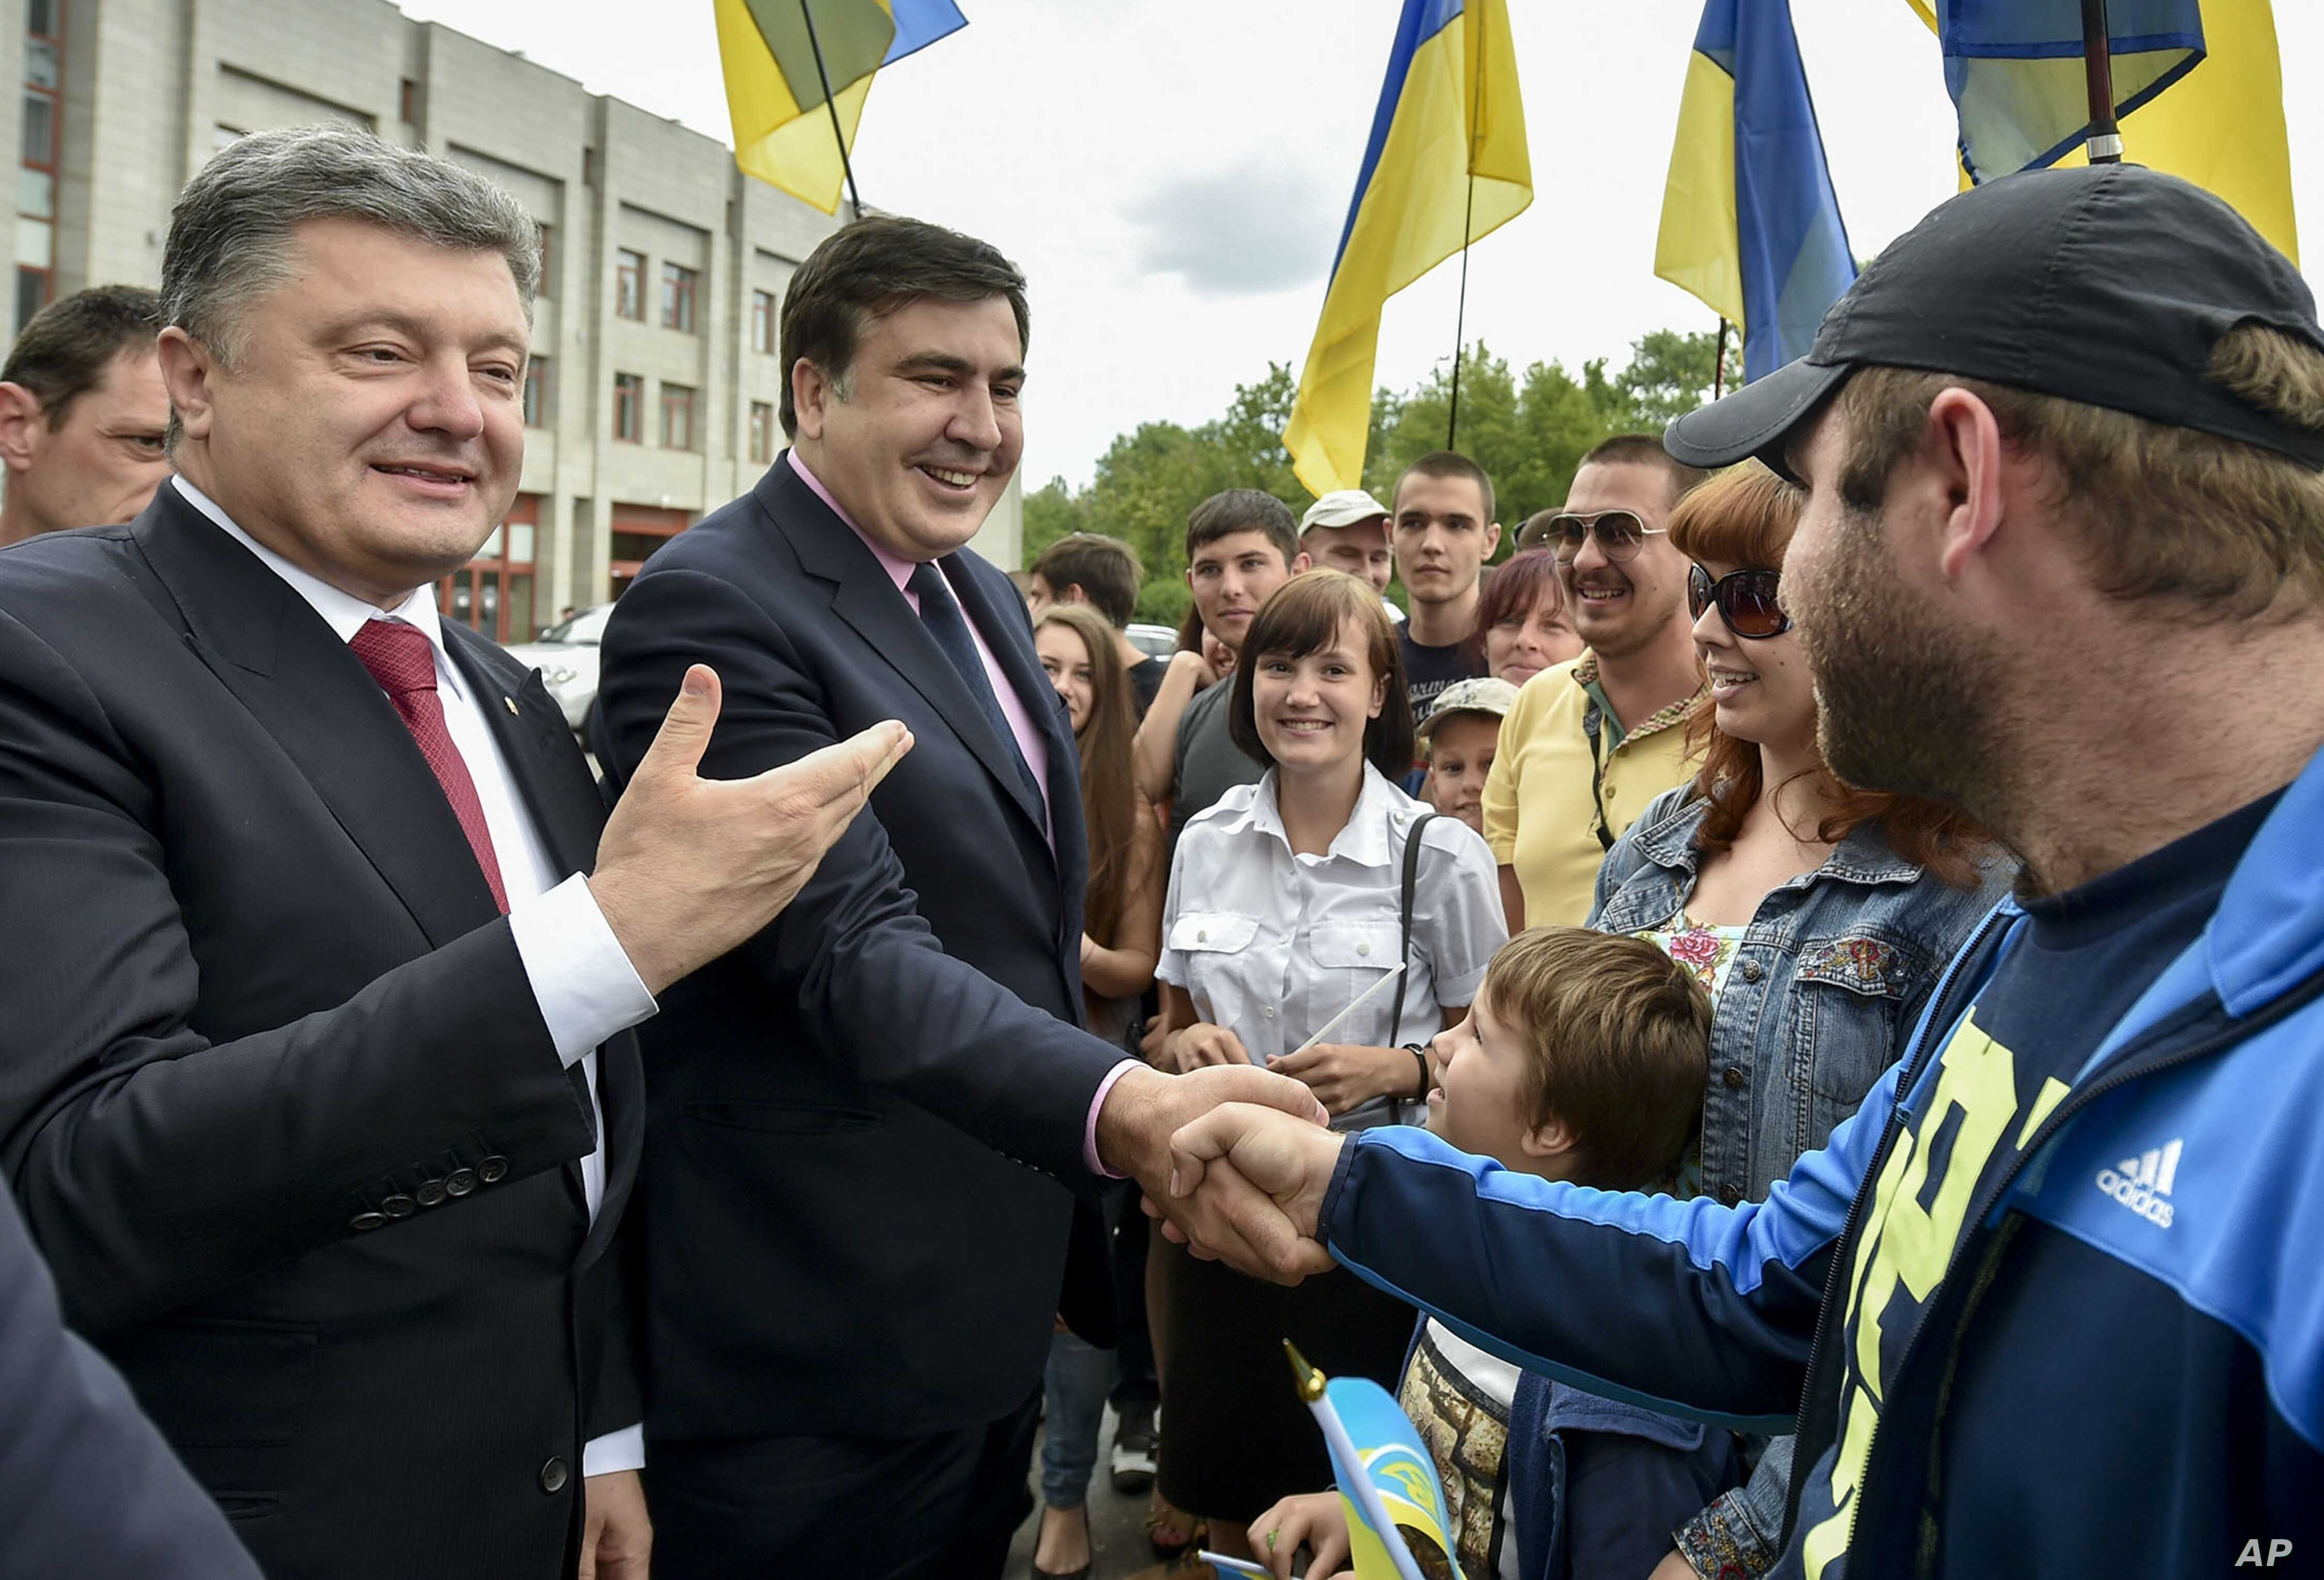 Seen during better times, Ukrainian President Petro Poroshenko, left, and then newly-appointed Odesa region governor Mikheil Saakashvili, second left, shake hands with local residents, in Odesa, Ukraine, May 30, 2015.